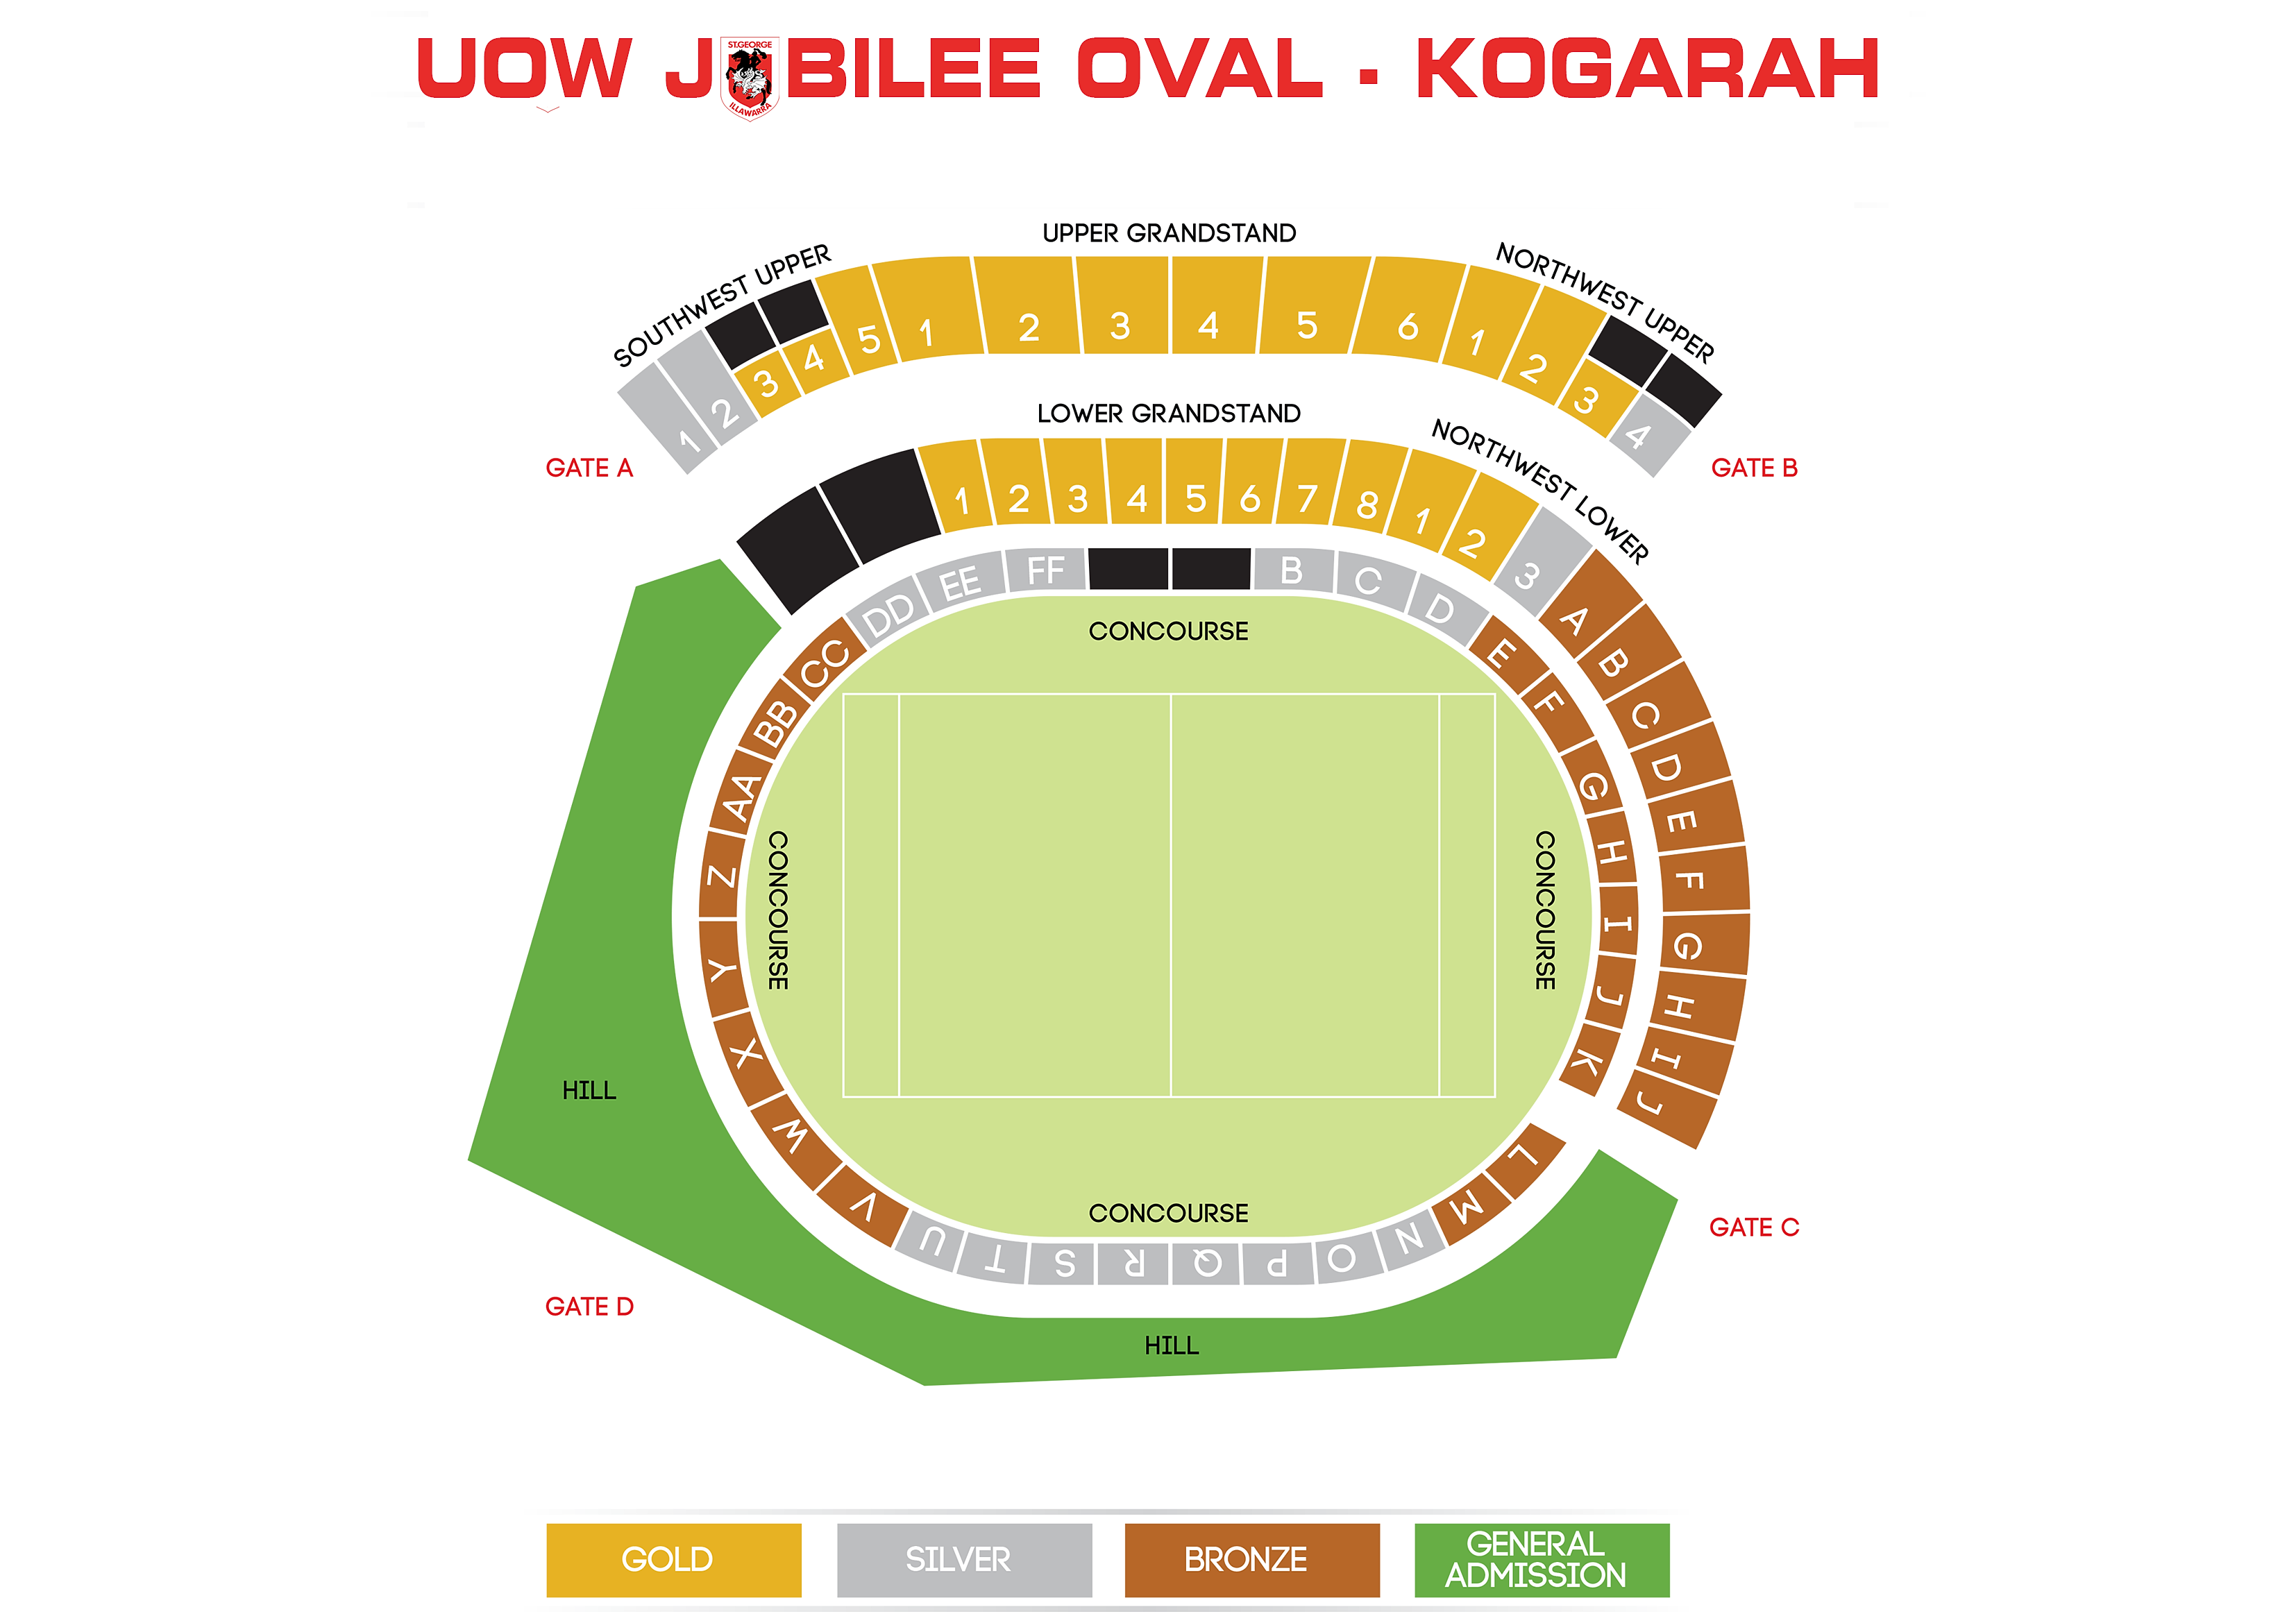 map f with Stadium Maps on Page 12 also Stadium Maps furthermore Karte faschinajoch further 4509647714 likewise 50515139.